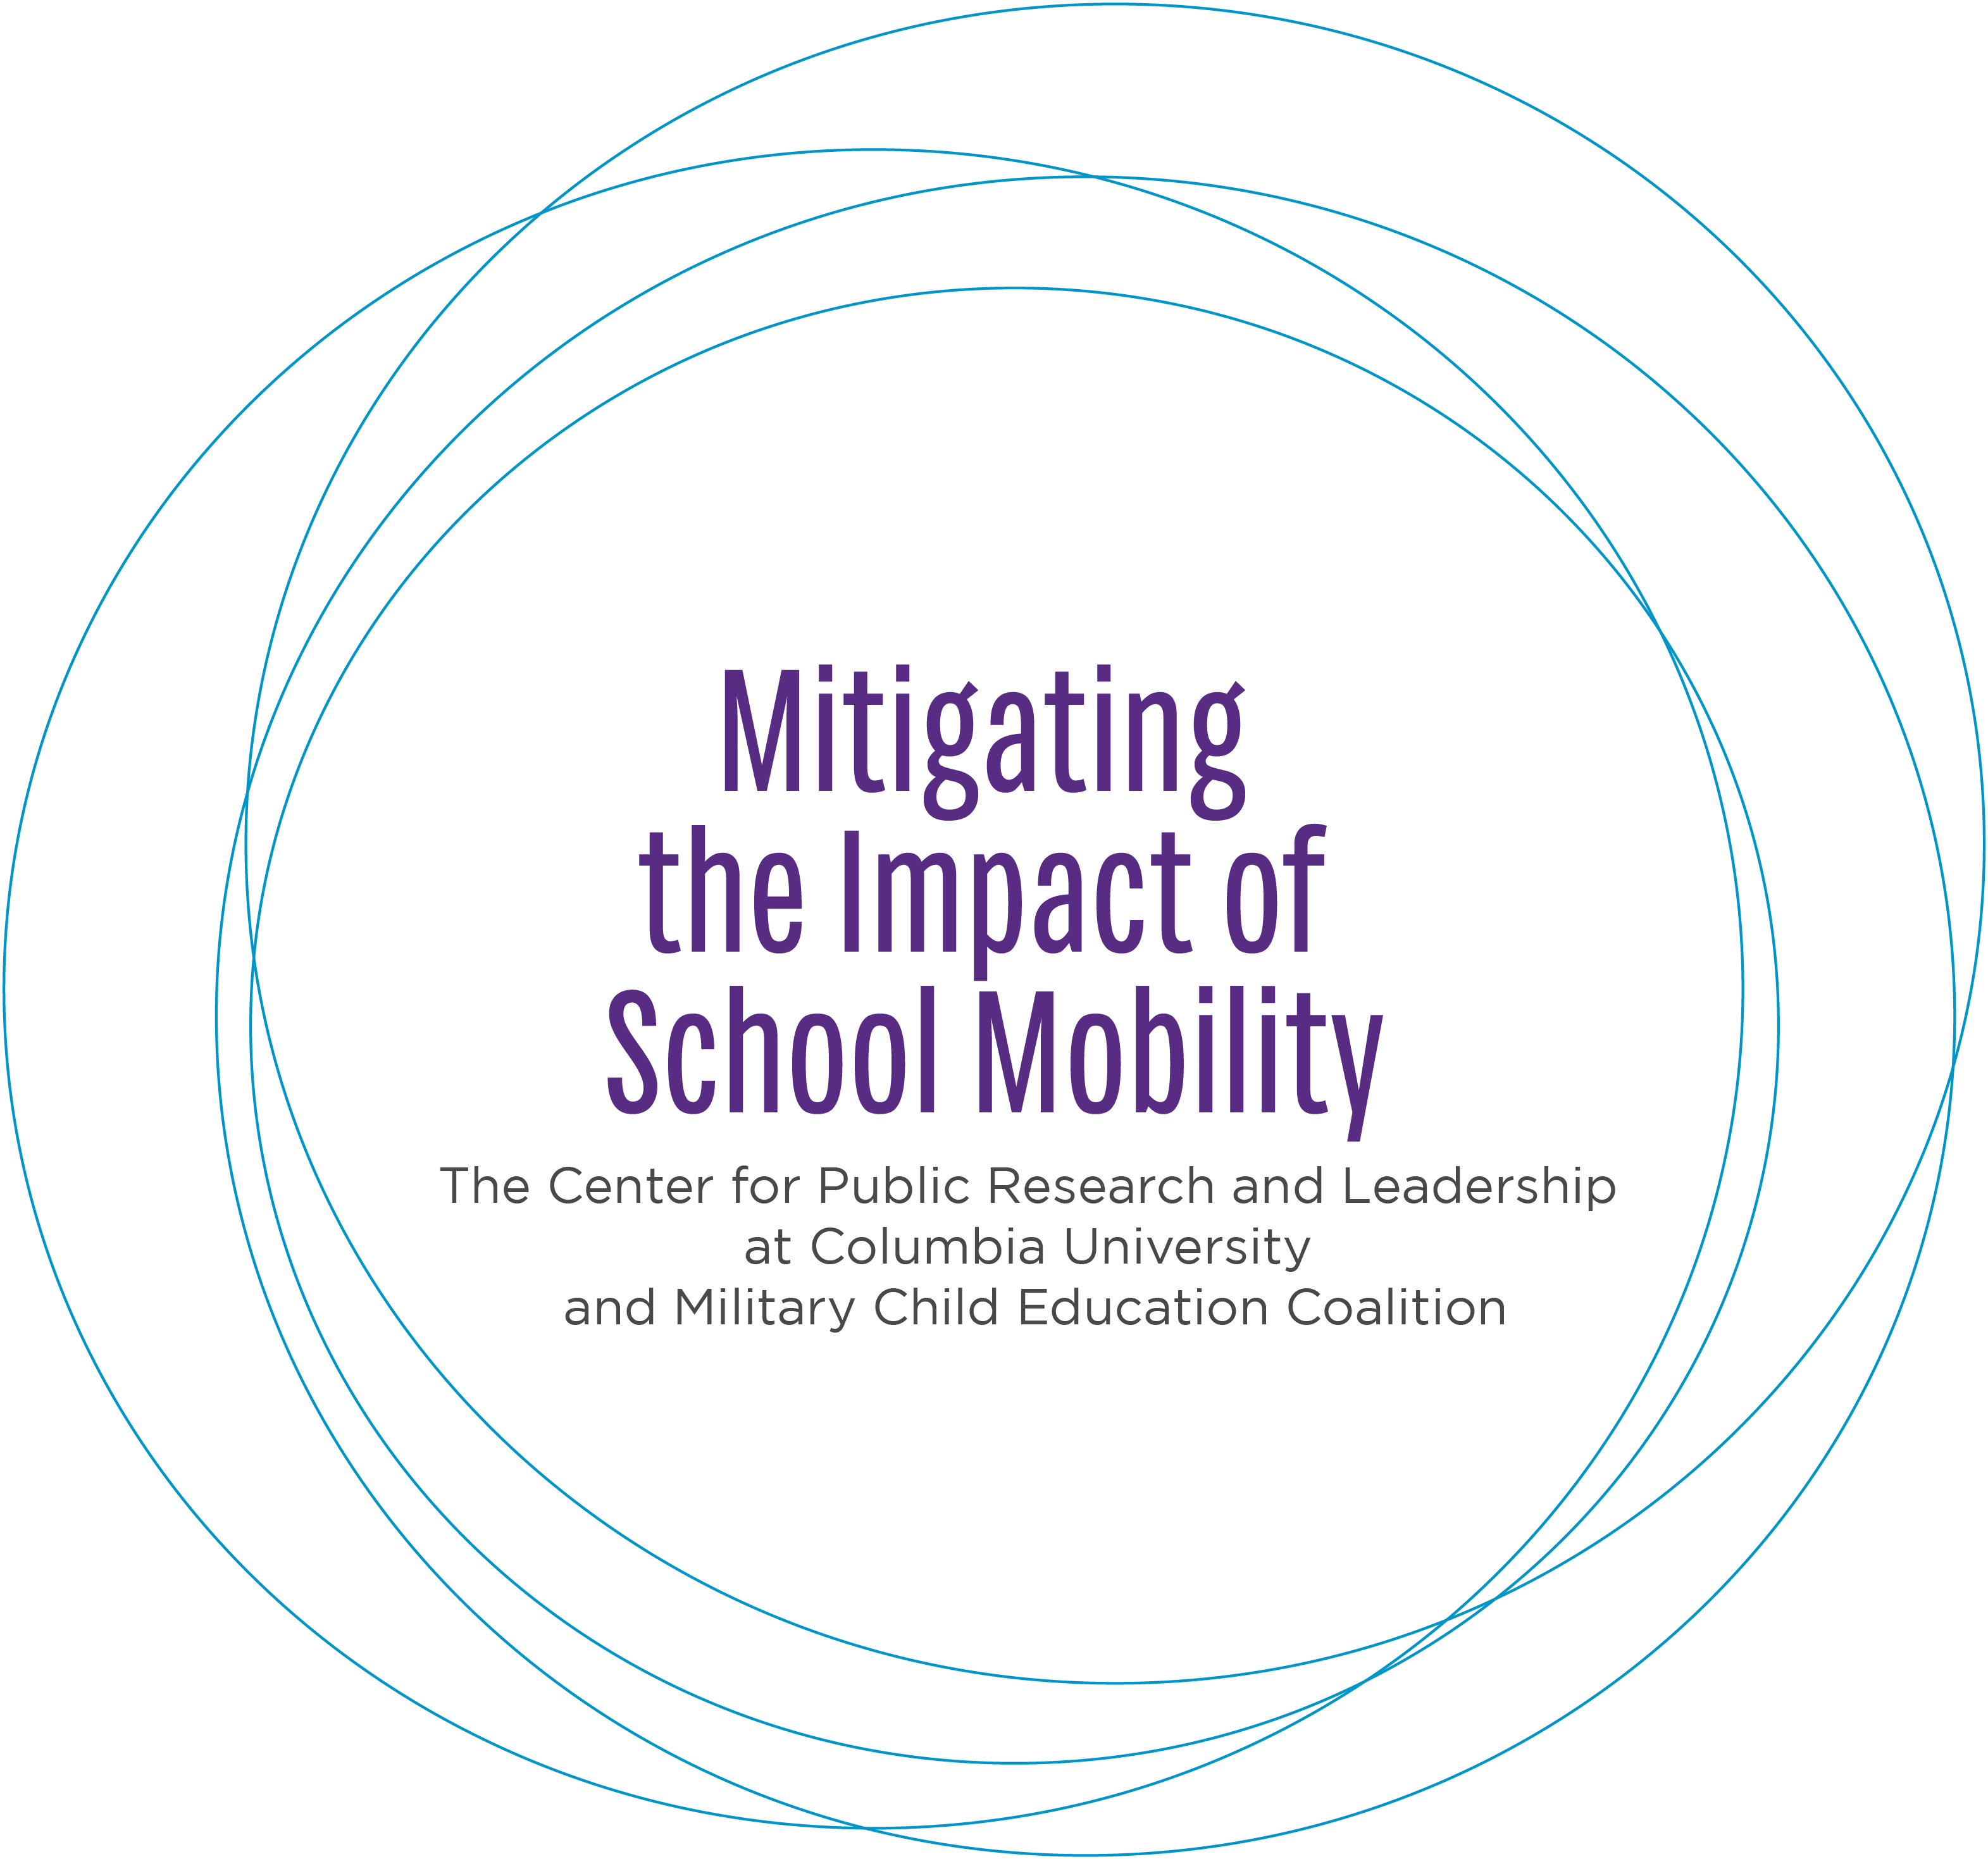 Mitigating the Impact of School Mobility